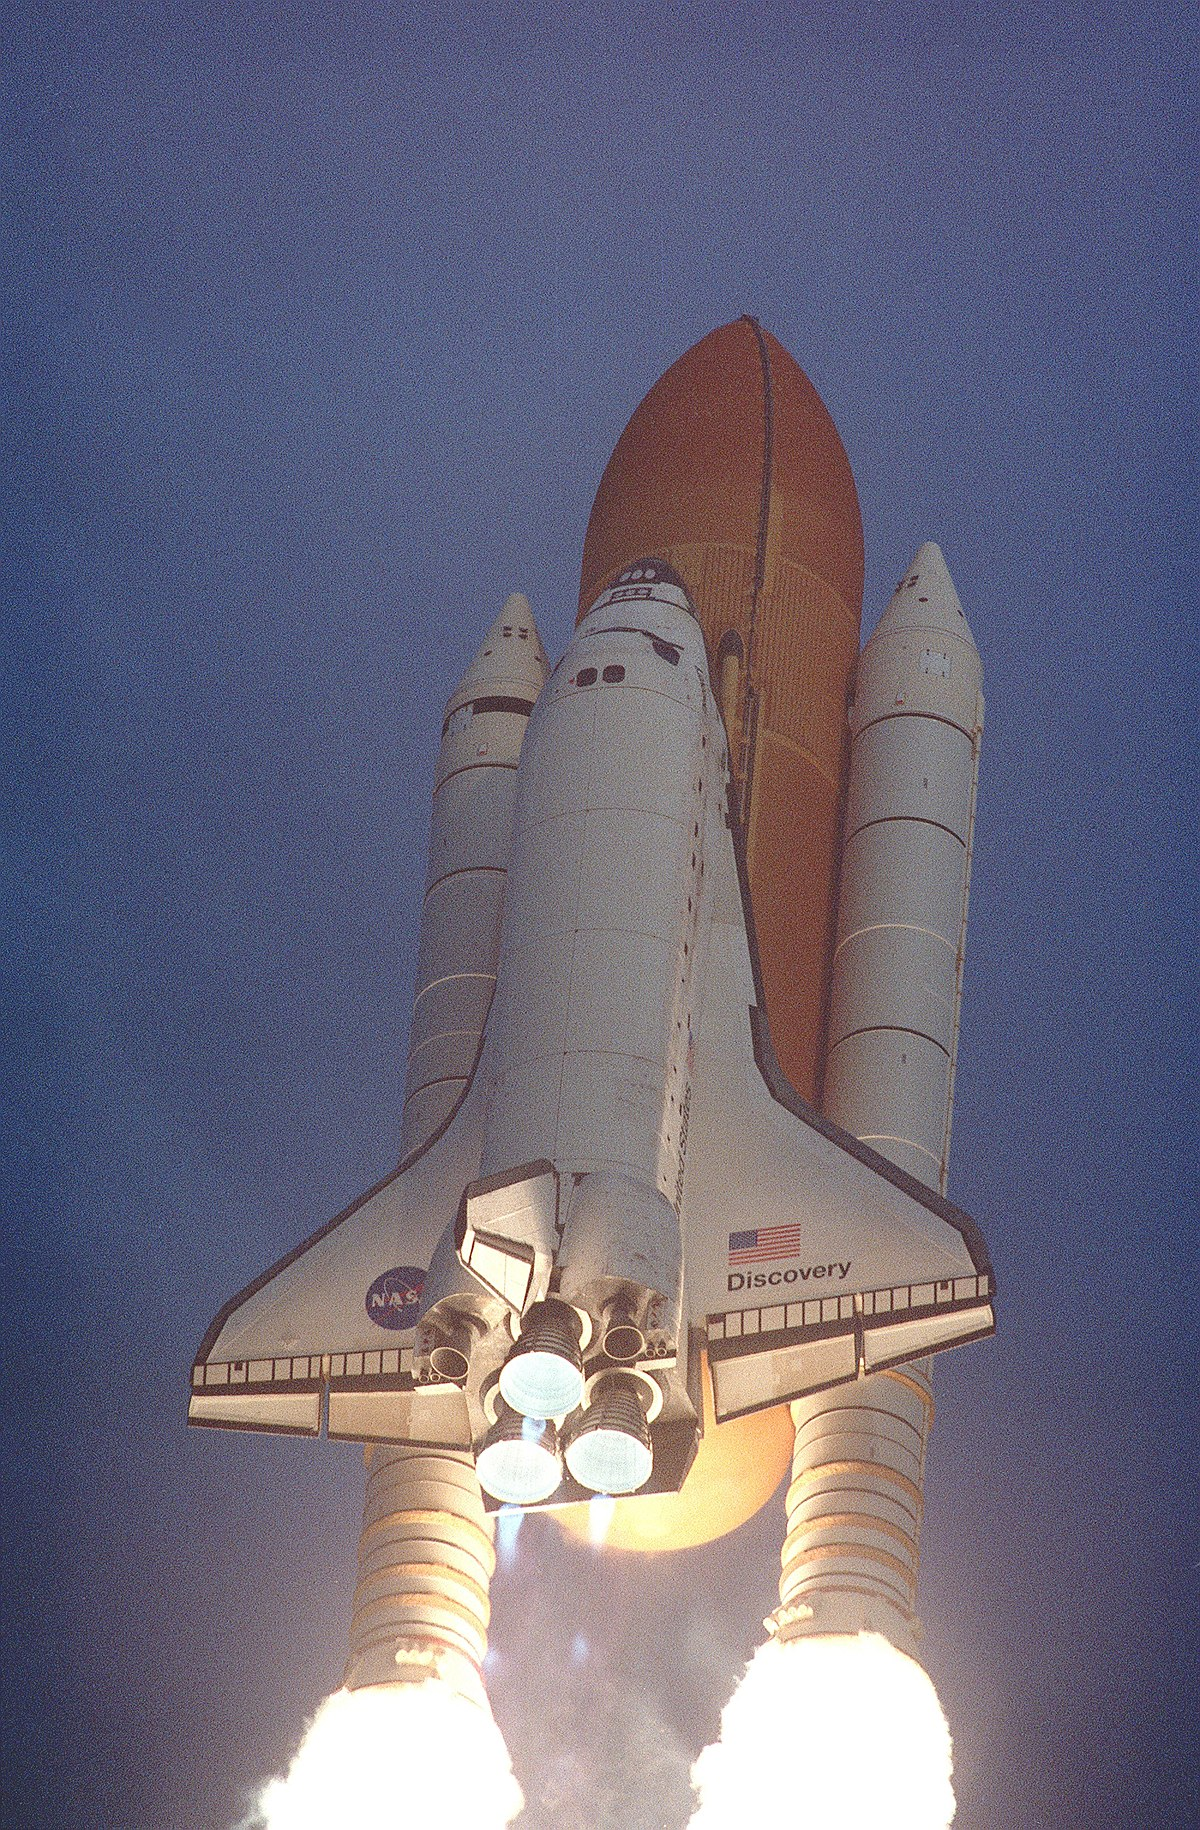 the space shuttle discovery - photo #9